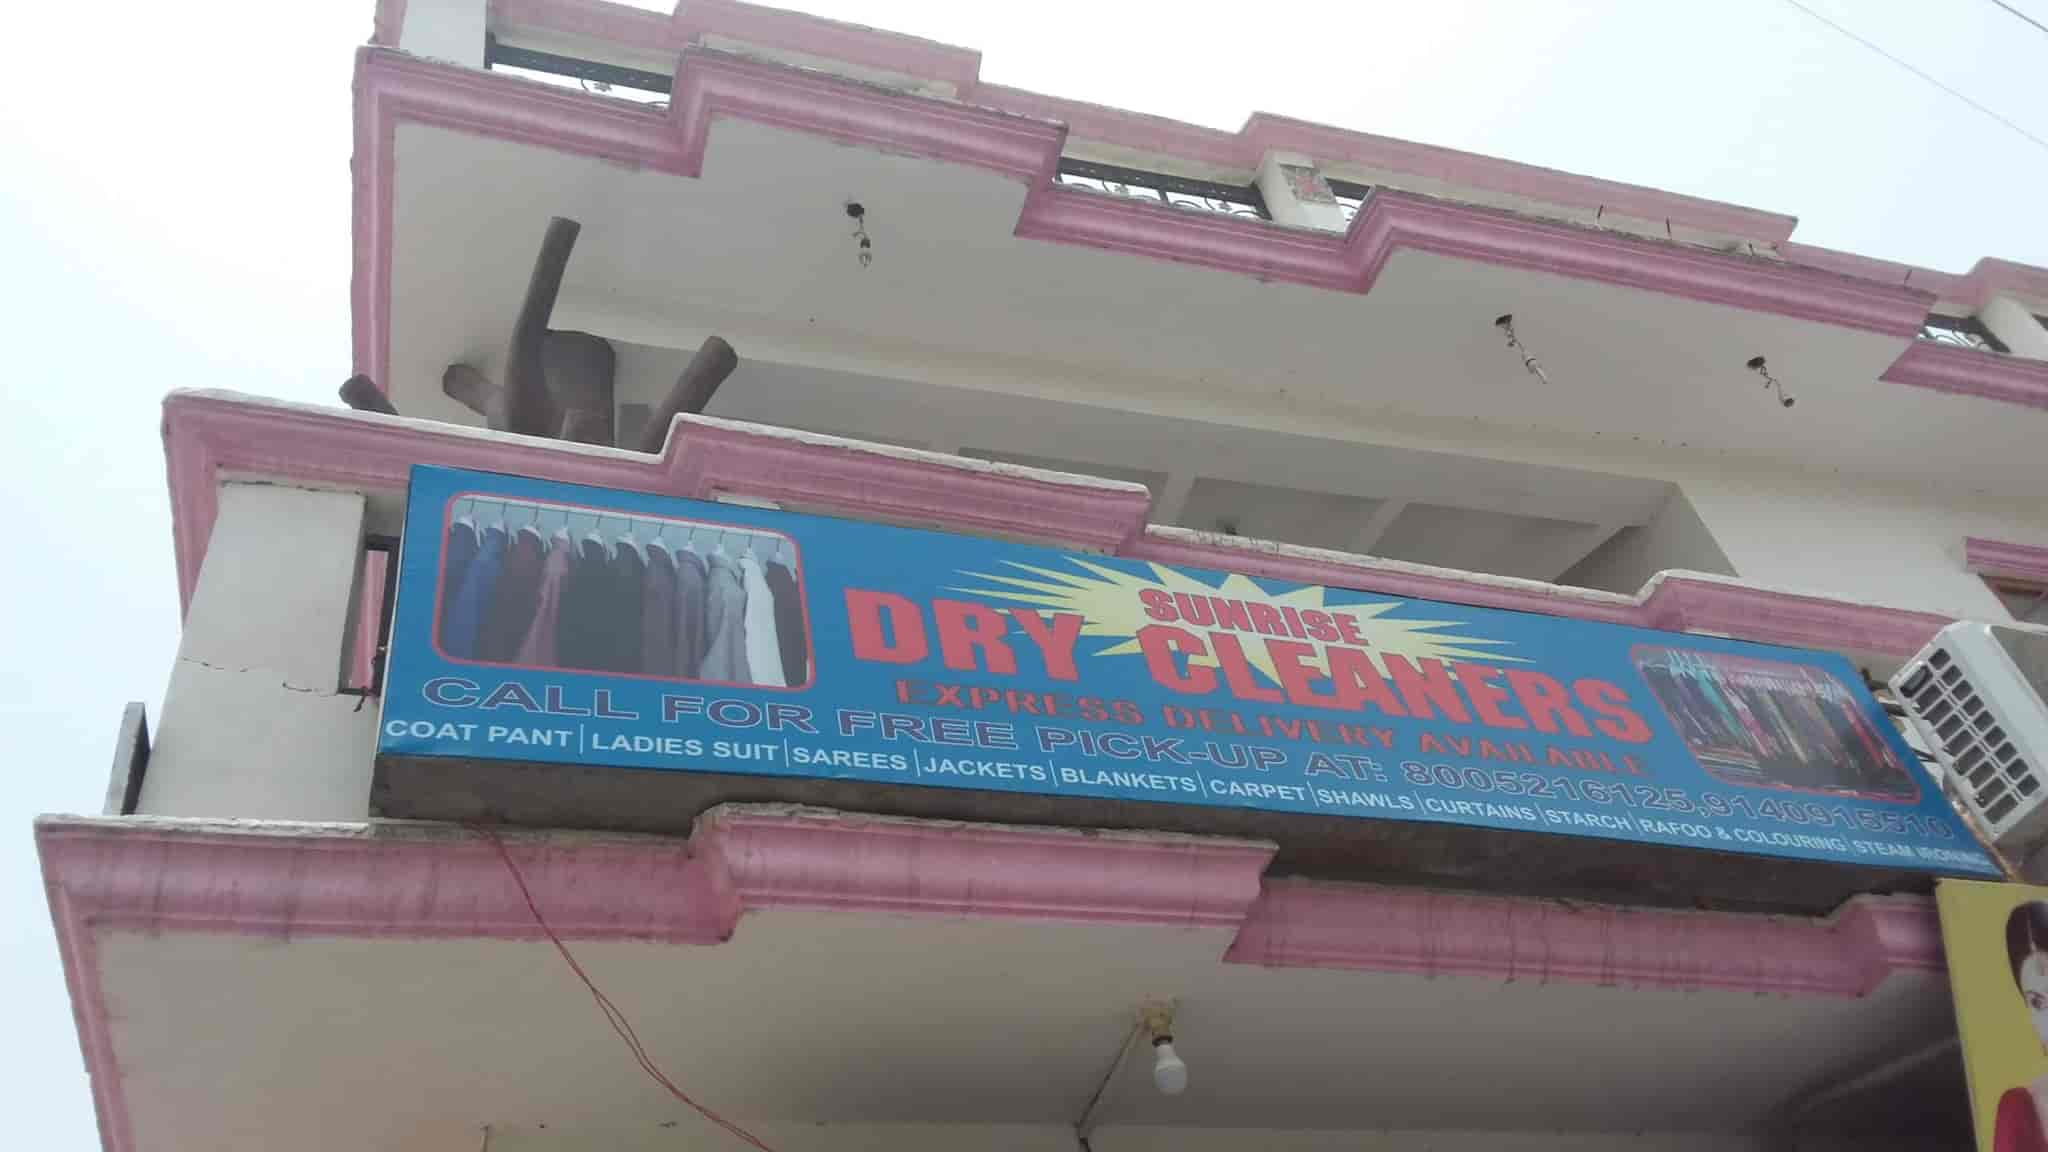 Sunrise Dry Cleaners Photos, Gomti Nagar, Lucknow- Pictures & Images ...